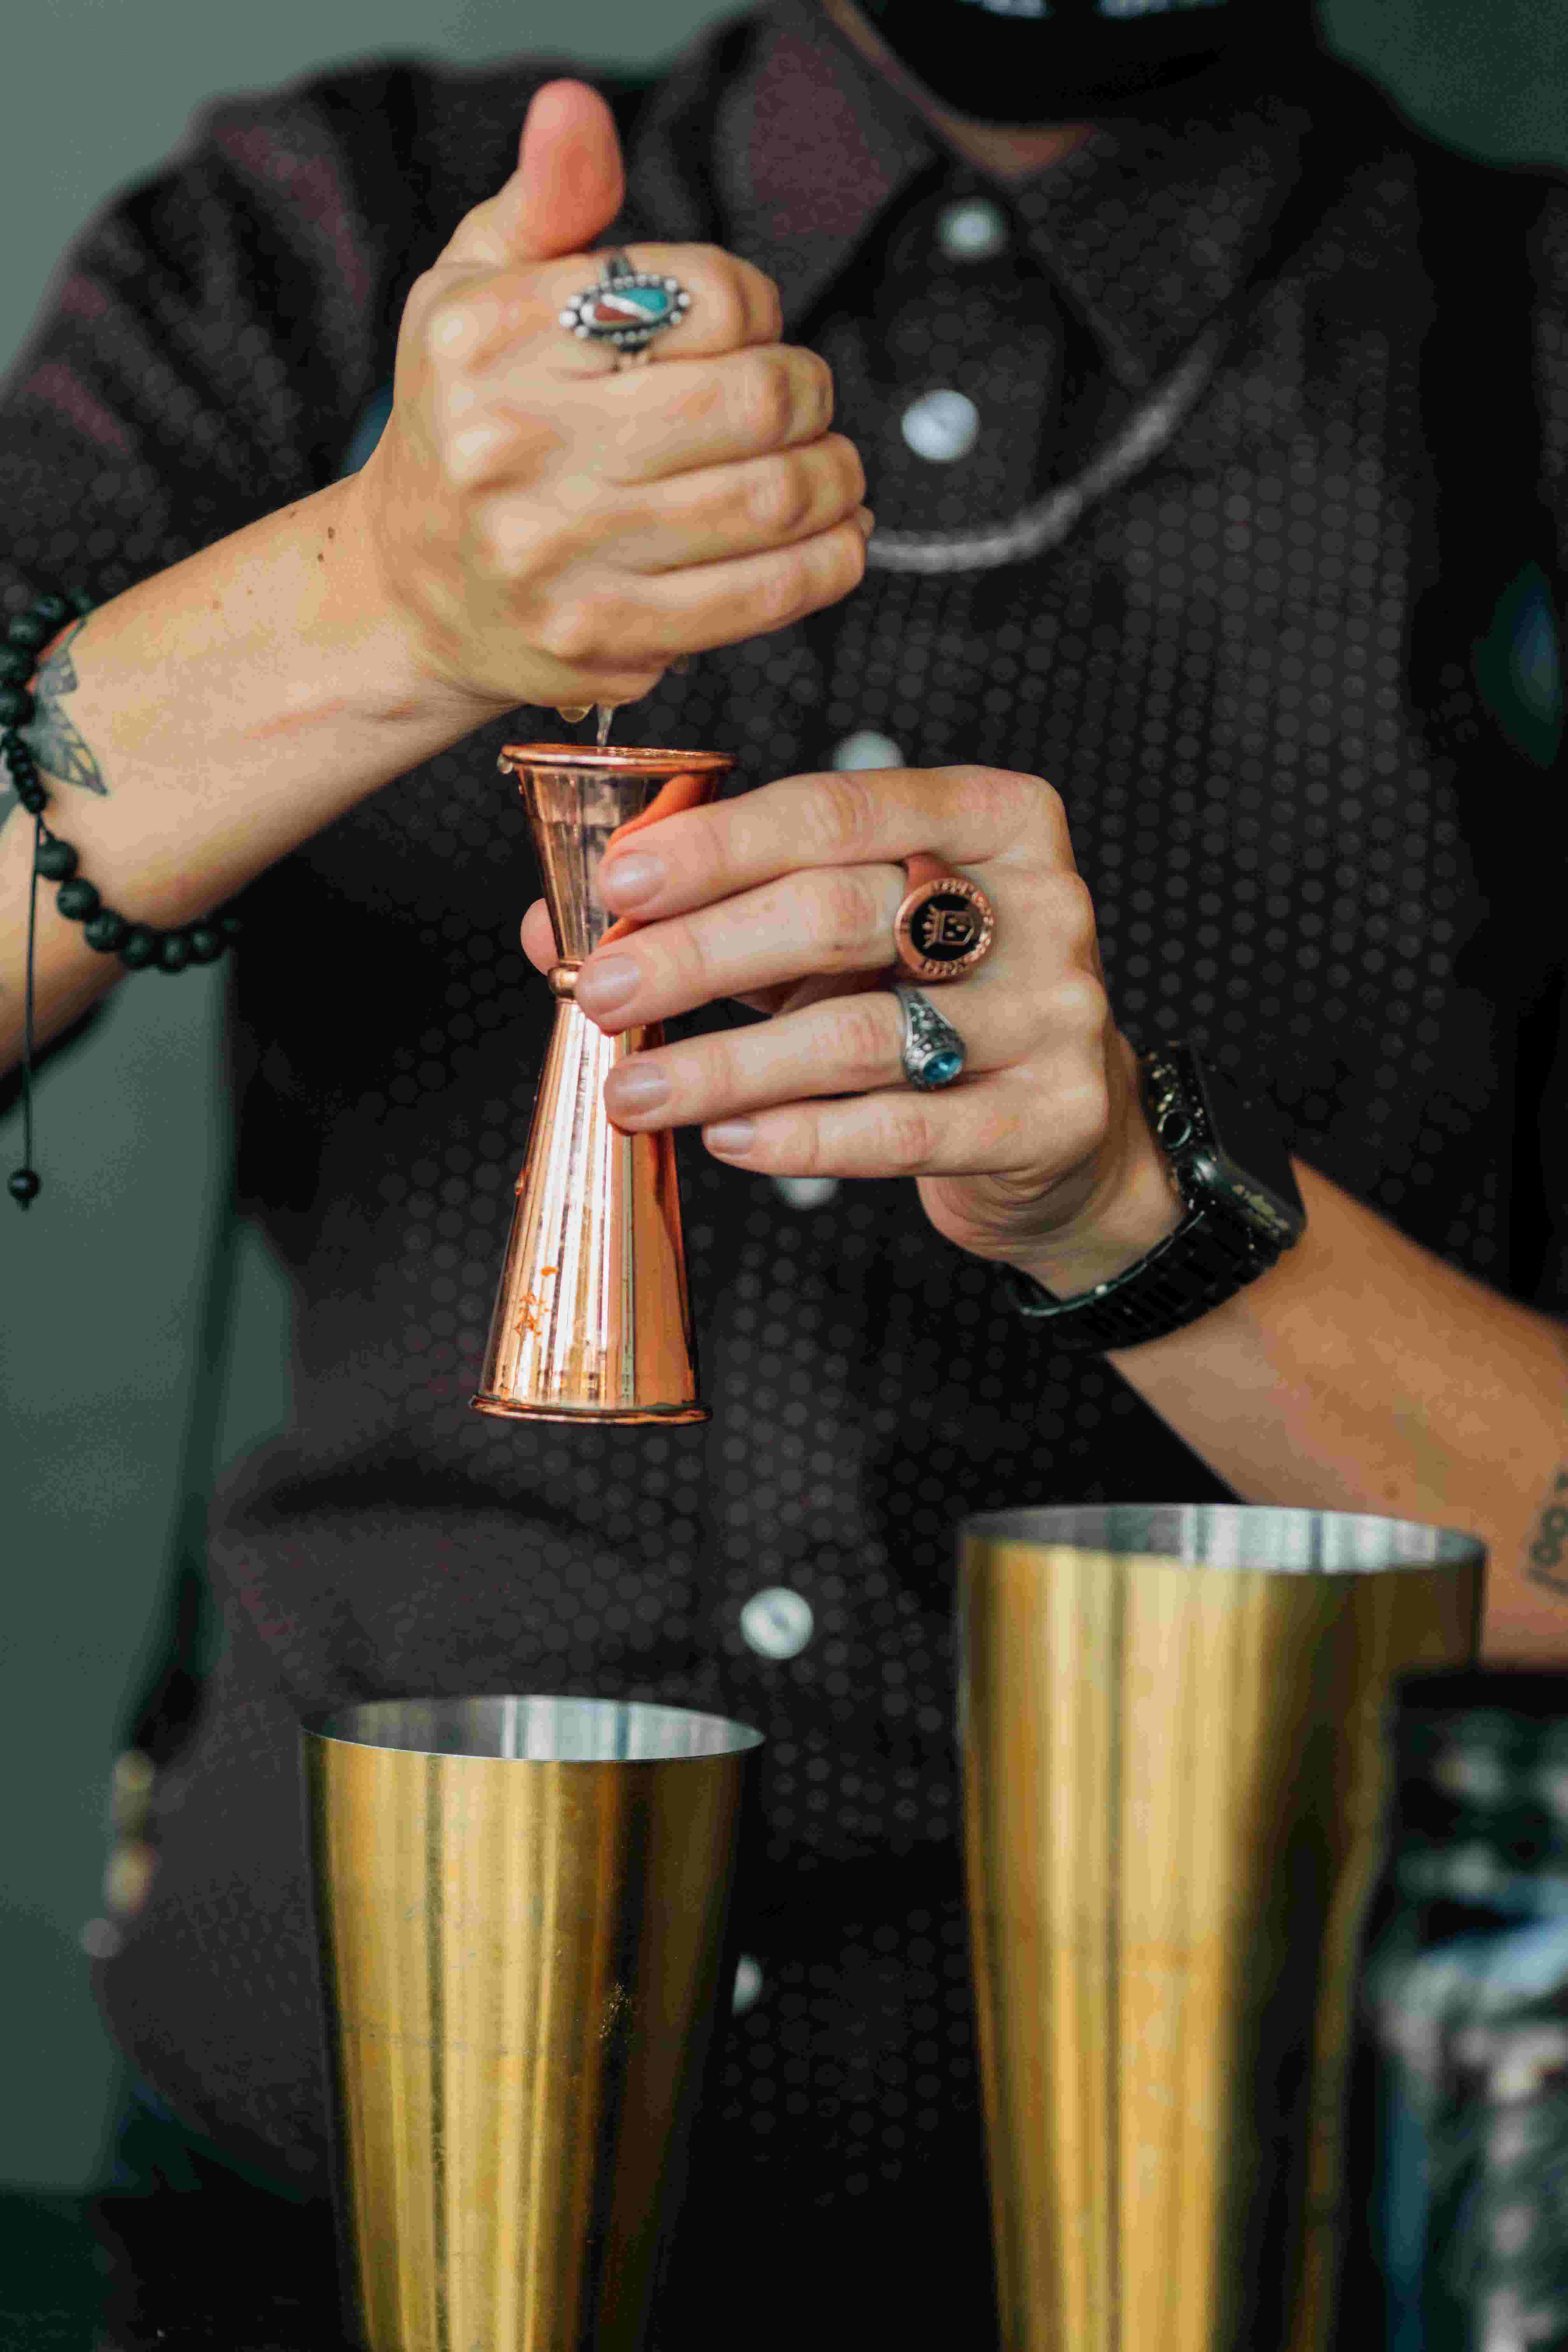 A bartender working with copper and gold-colored barware equipment to make a cocktail